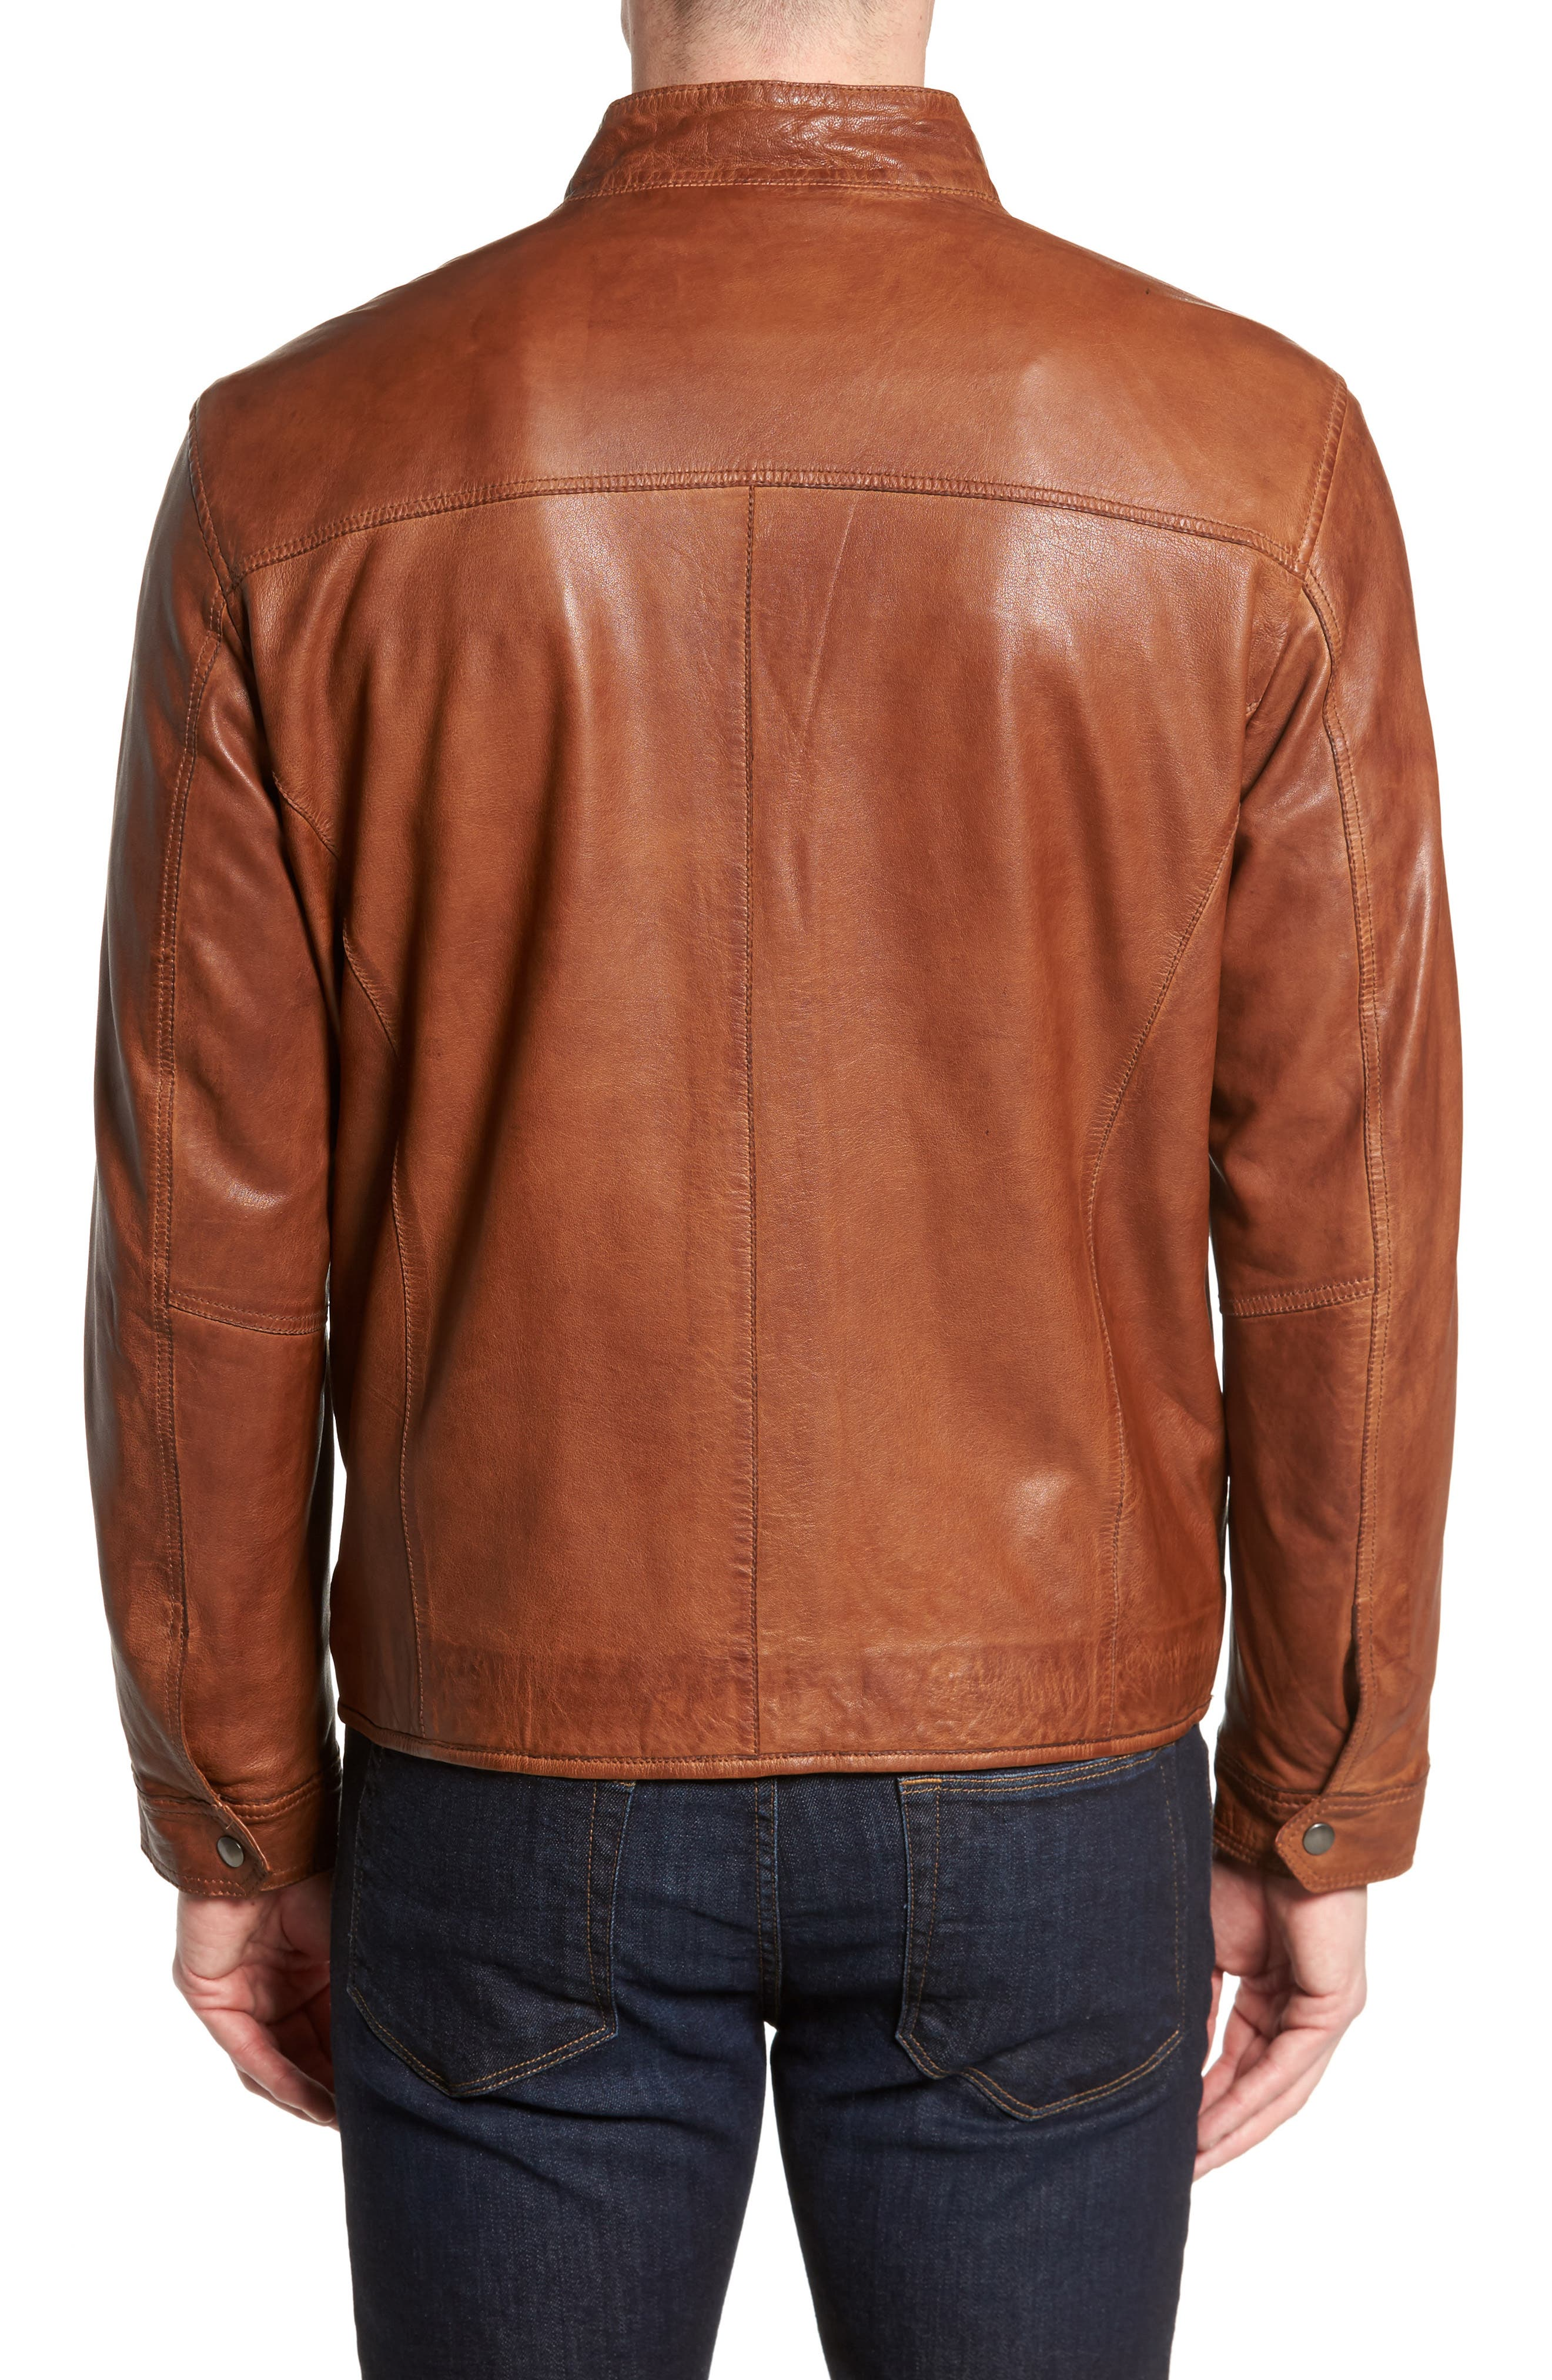 Zip Leather Jacket,                             Alternate thumbnail 2, color,                             210